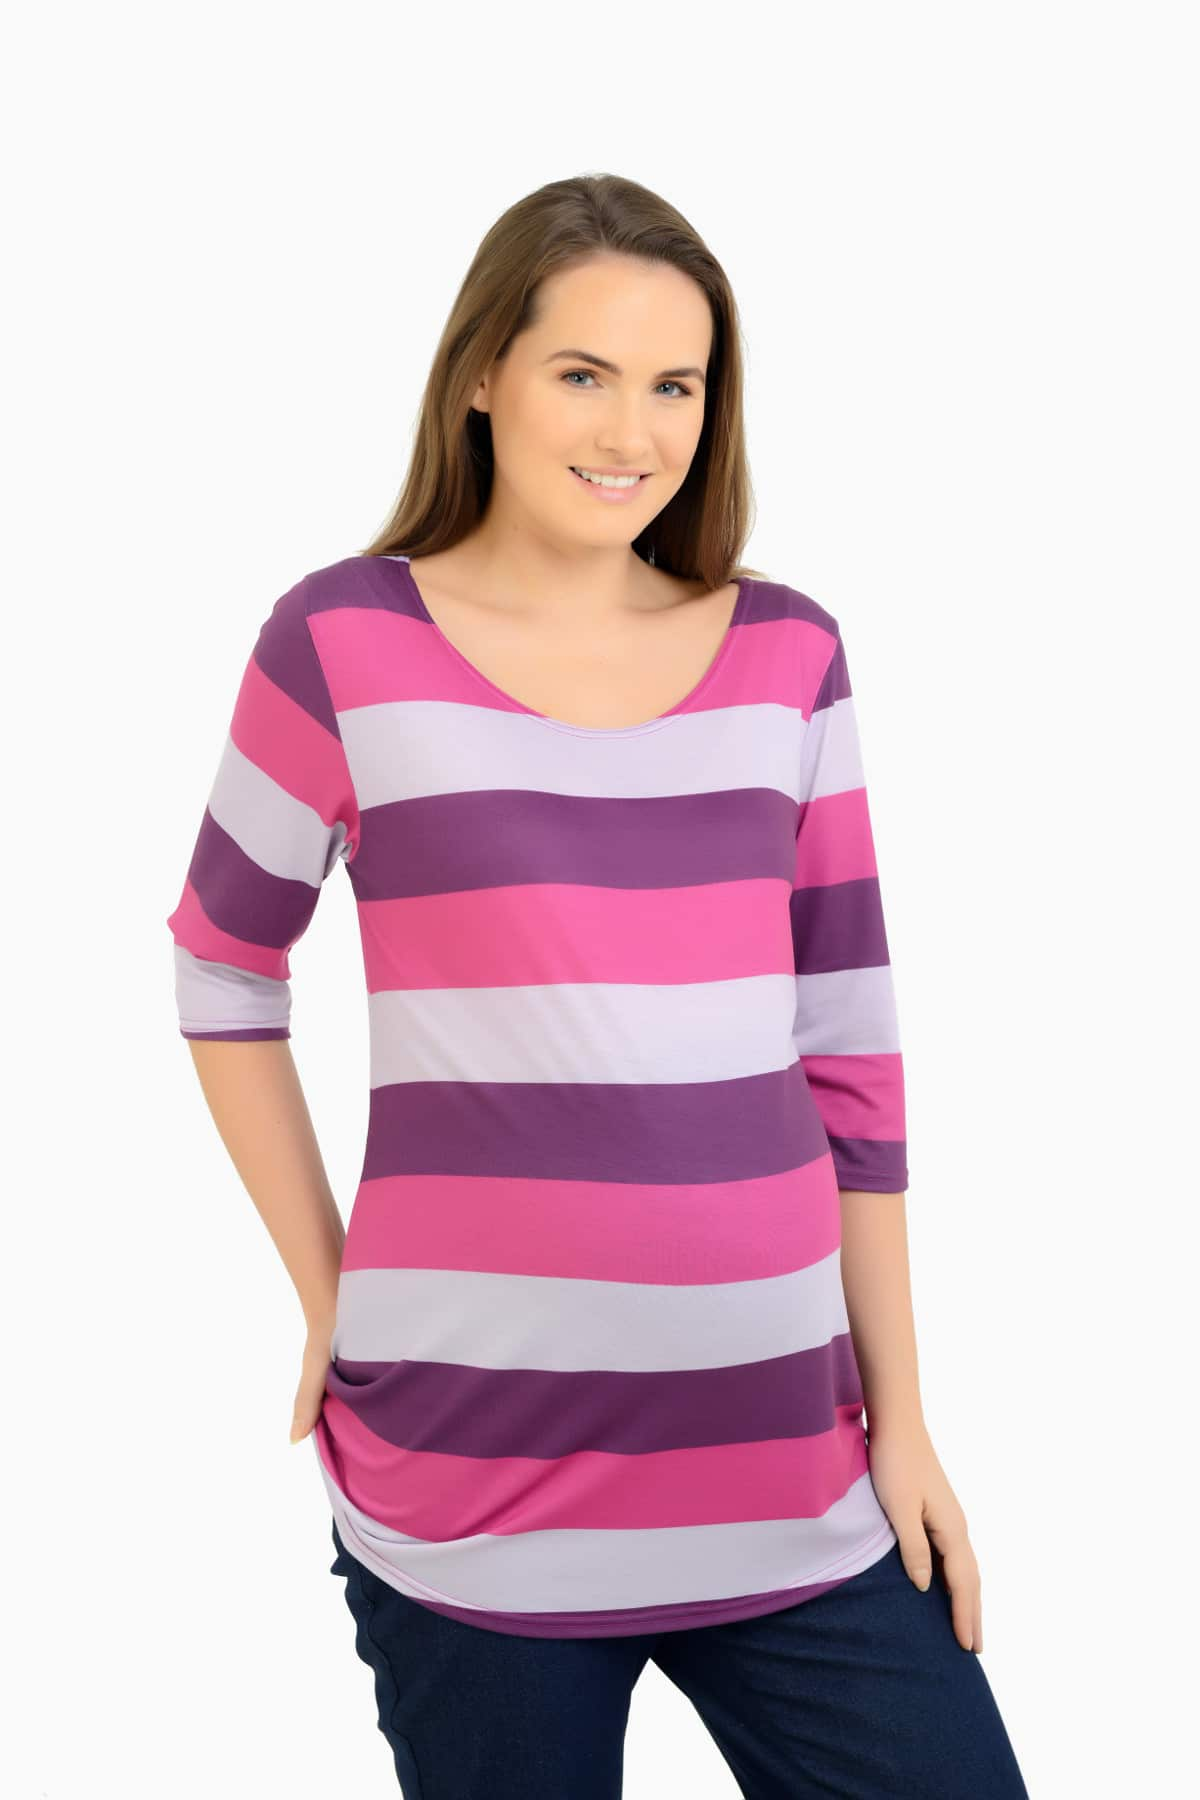 Classic stripes and a soft material are perfect to bring you both comfort and style this season. Not to mention, the suede accent elbow patch on the sleeves makes this top stand out and keep your wardrobe up-to-date. Pair this maternity top with your favorite jeans and boots for .